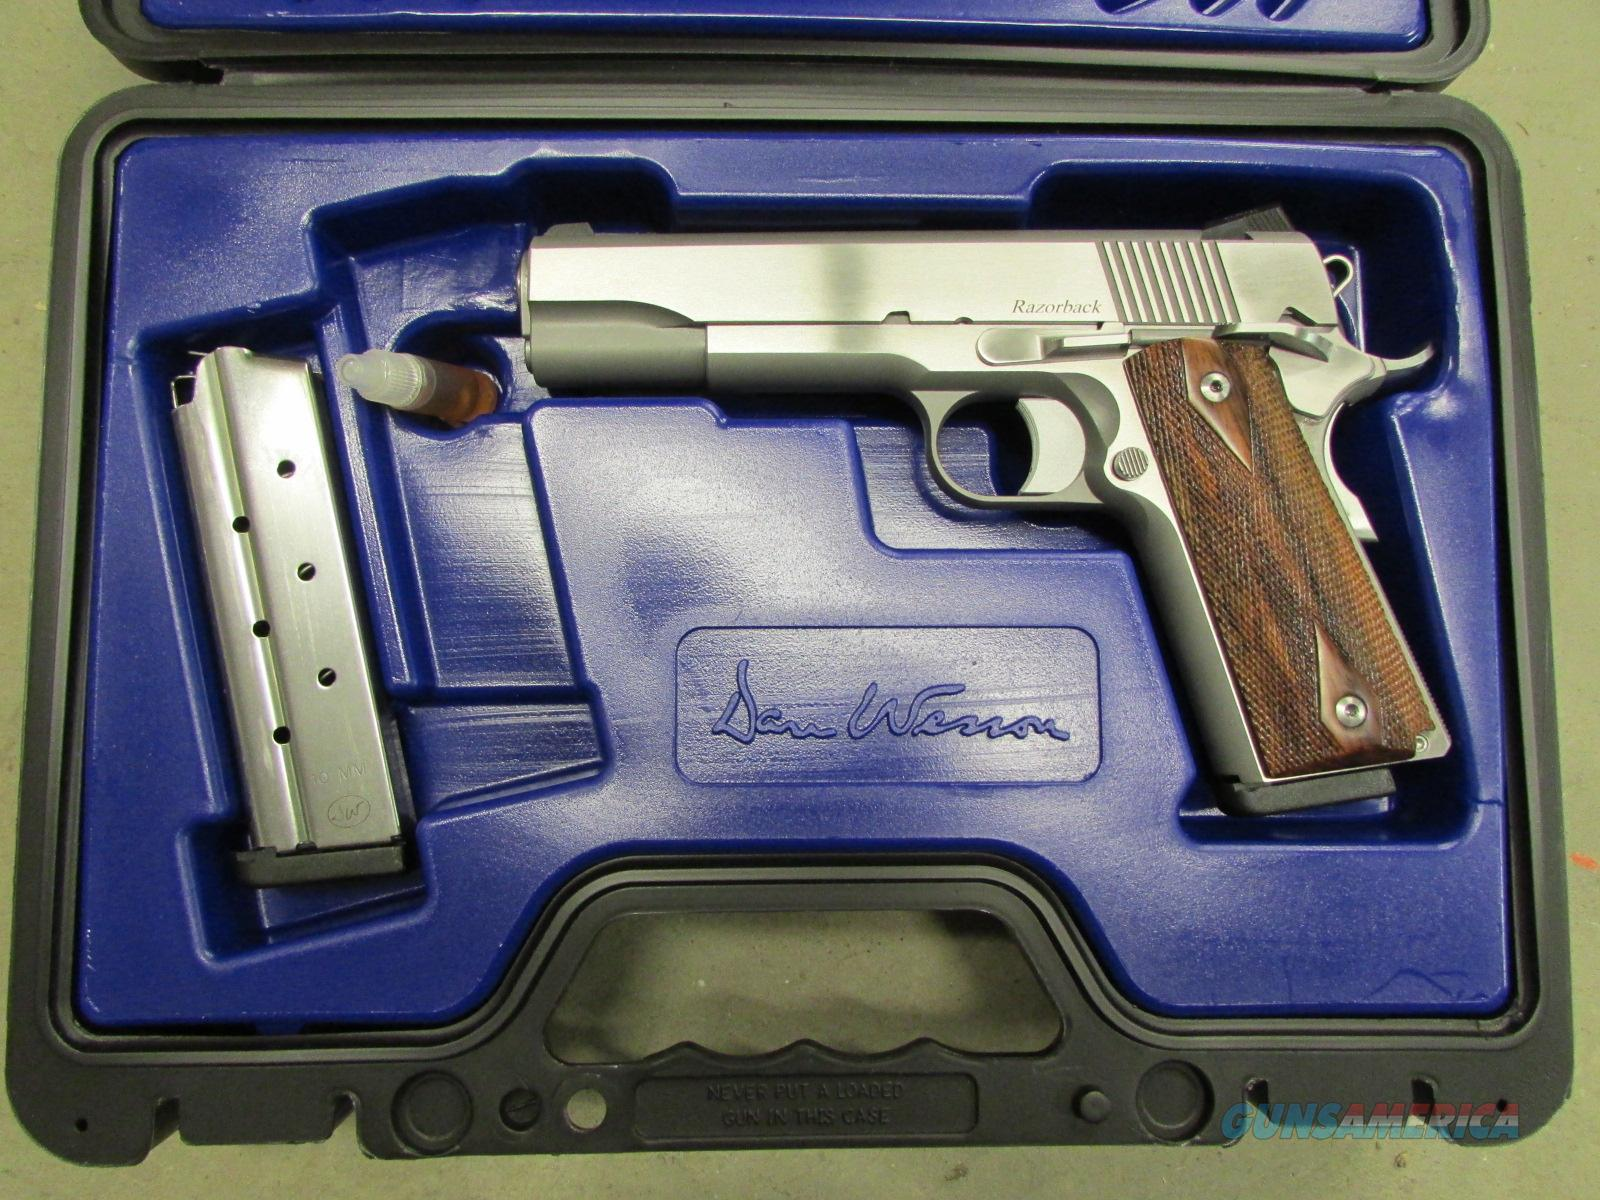 CZ-USA Dan Wesson Razorback Stainless 1911 Wood Grips 10mm  Guns > Pistols > Dan Wesson Pistols/Revolvers > 1911 Style